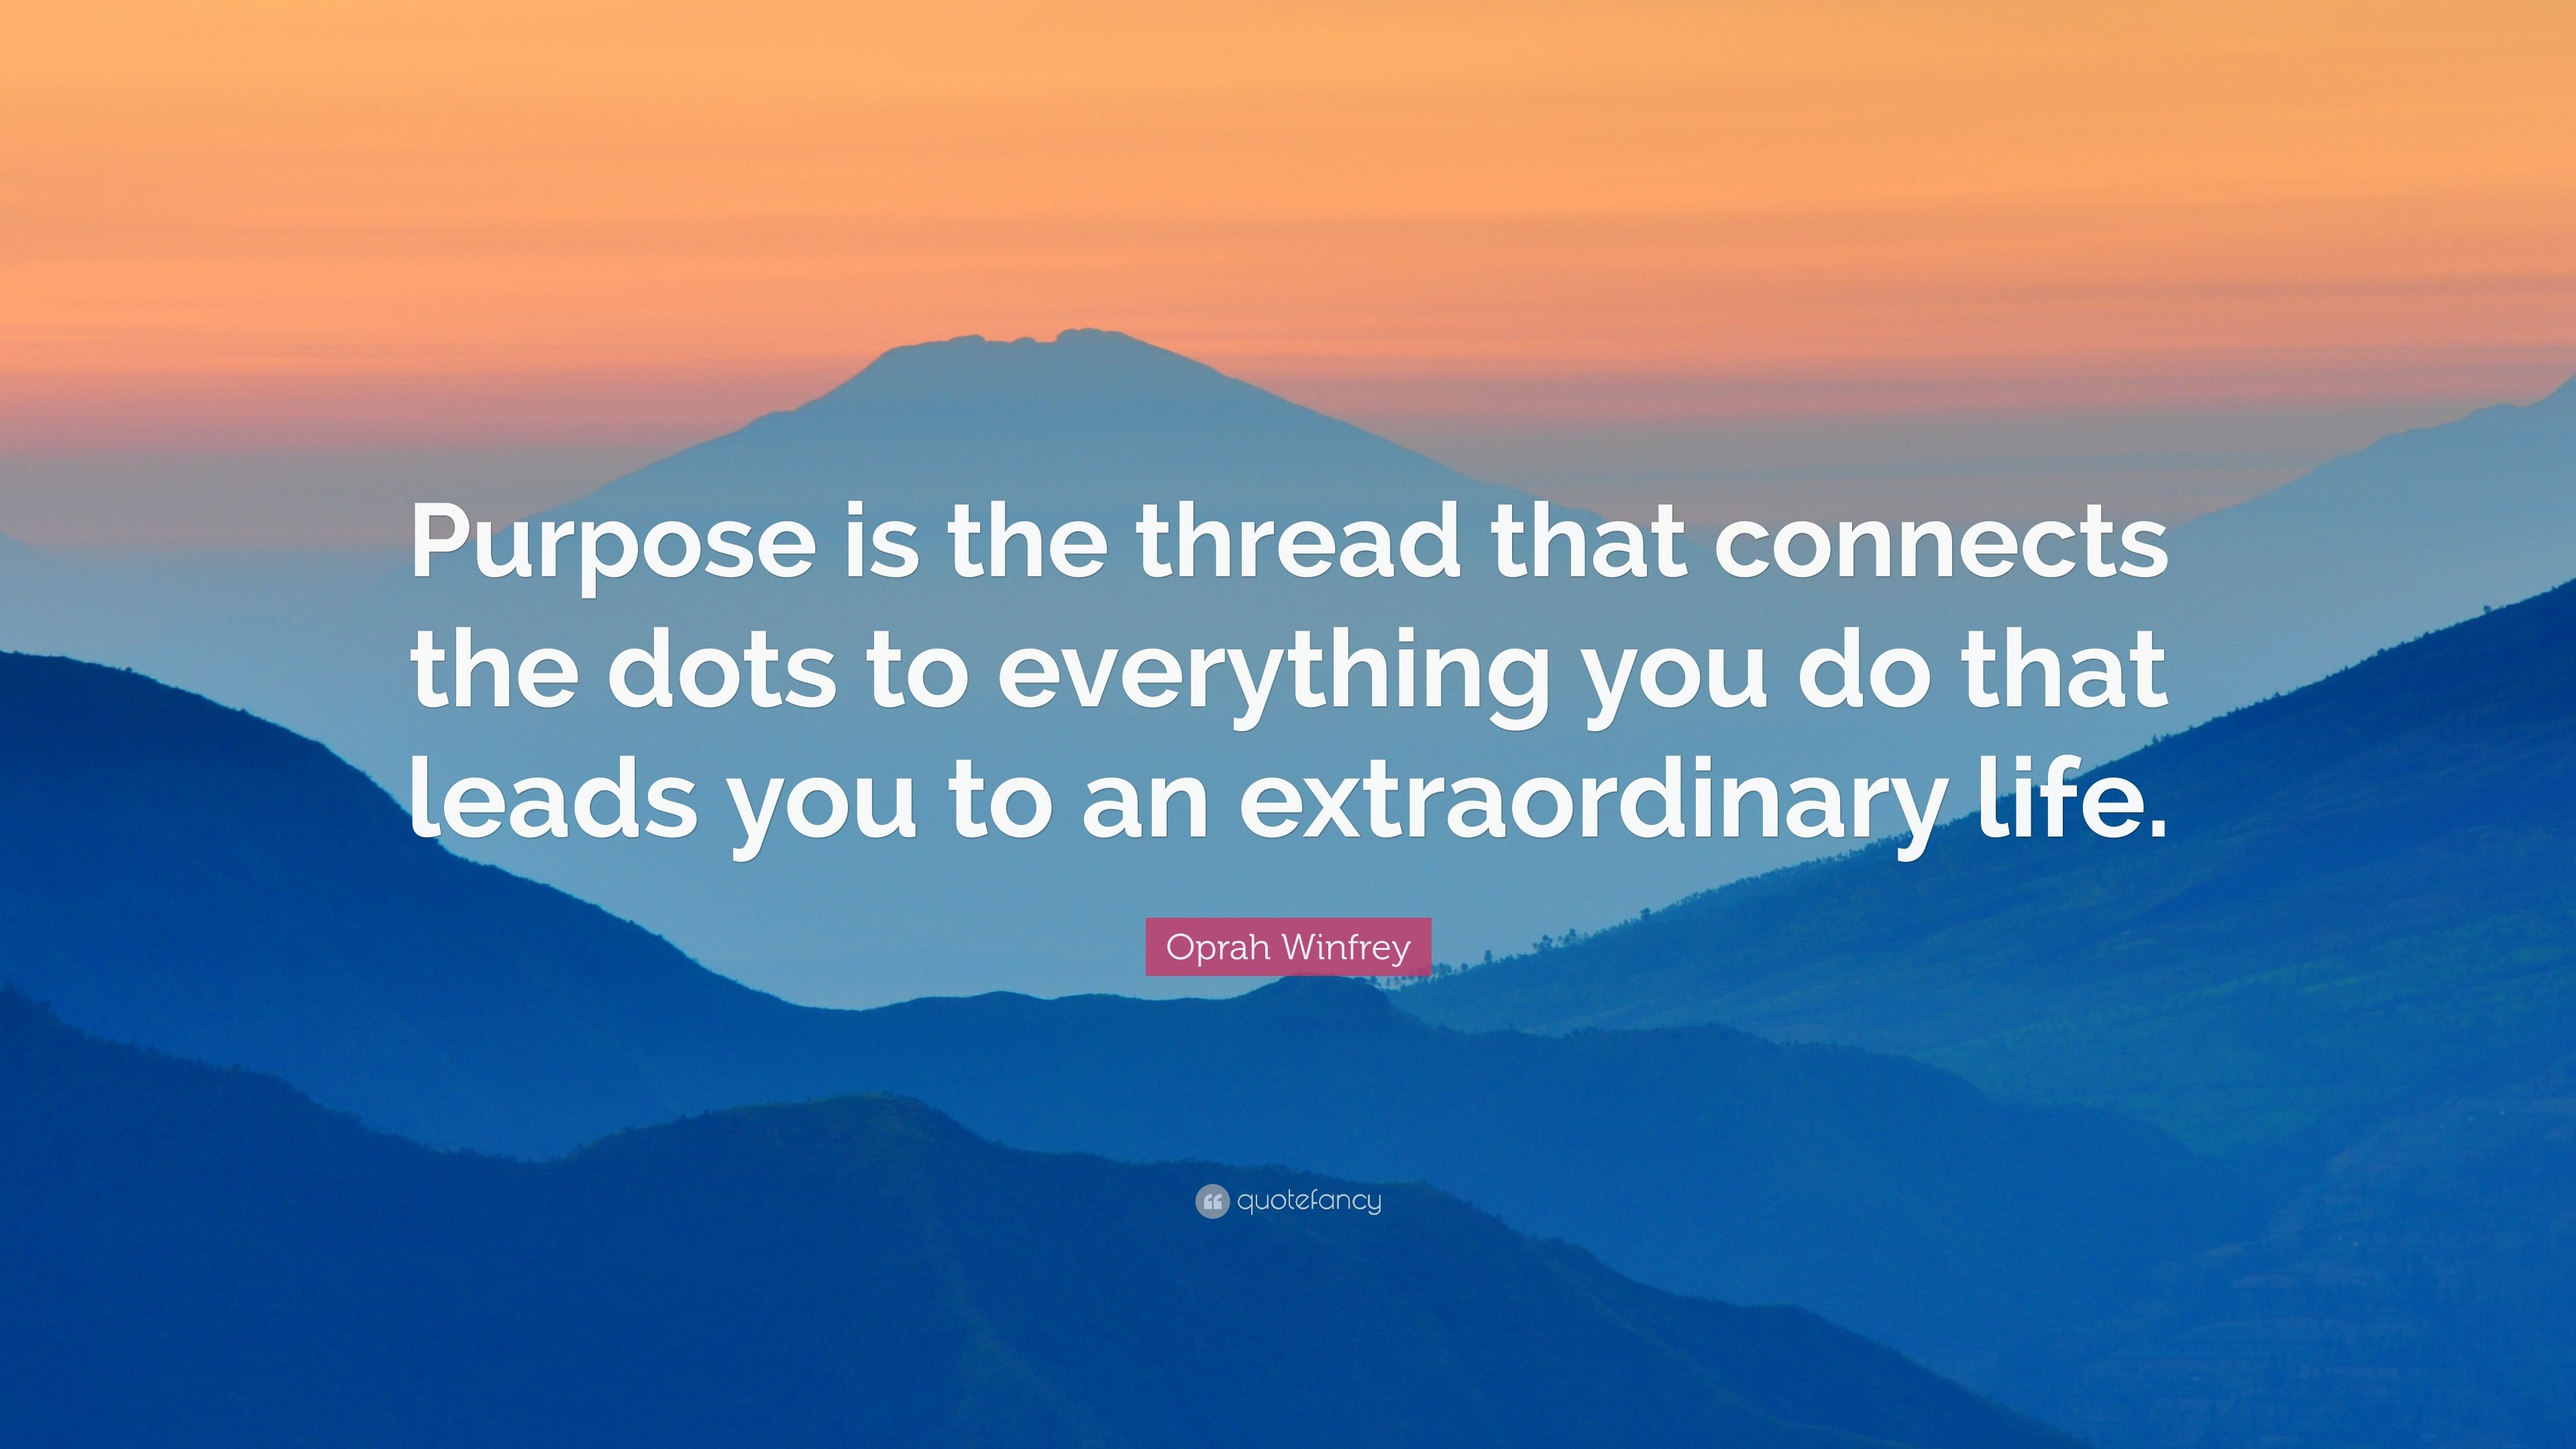 oprah winfrey quote u201cpurpose is the thread that connects the dots